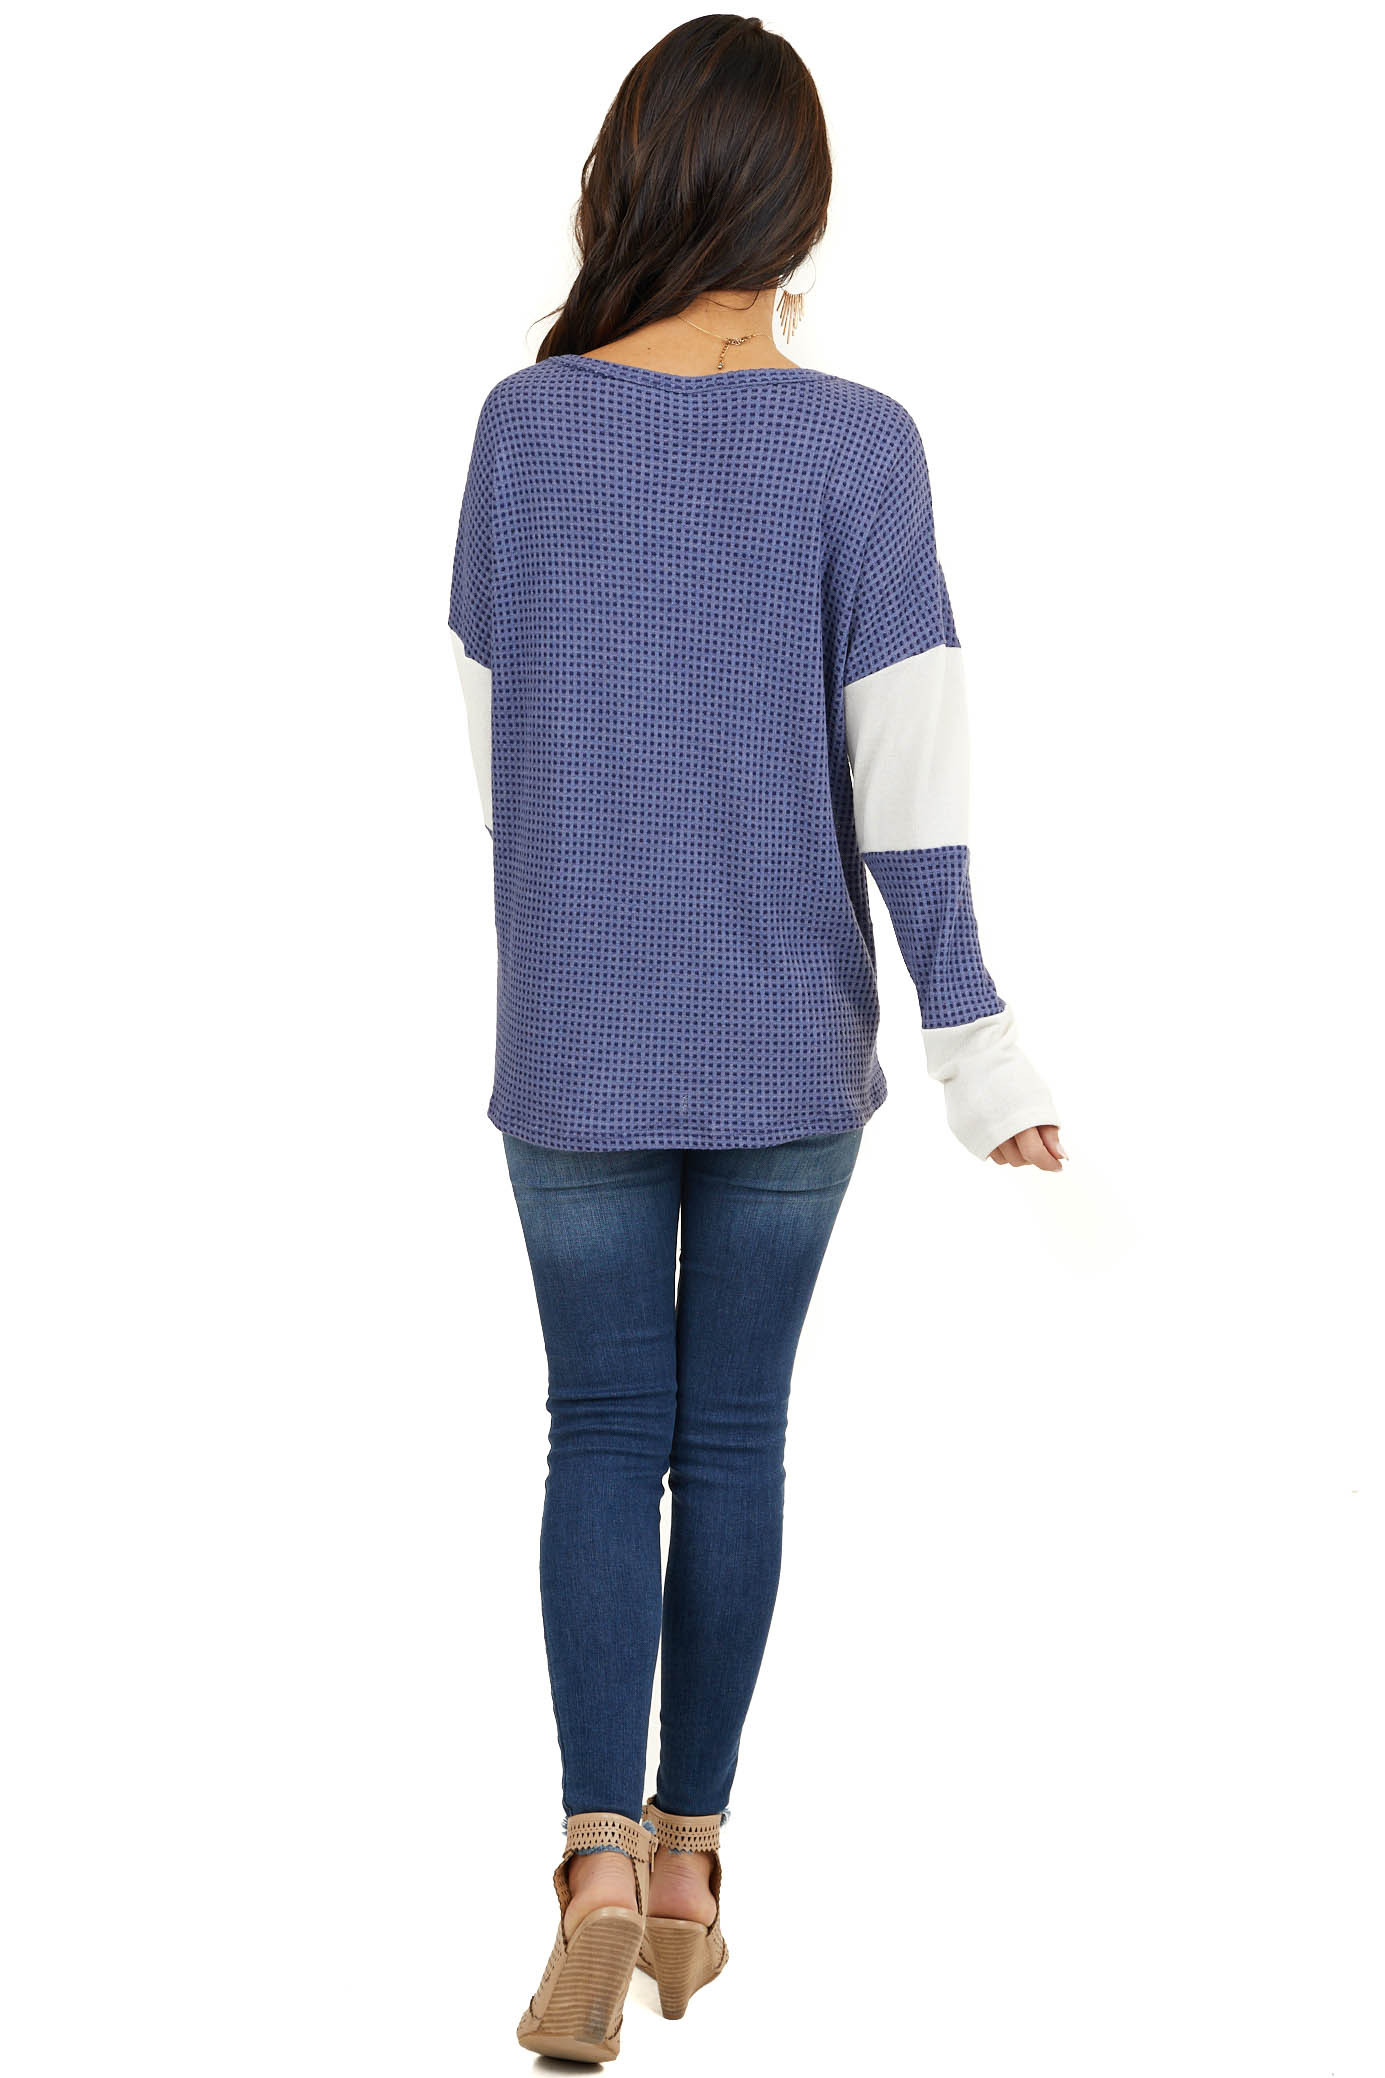 Periwinkle and Cream Waffle Knit Long Sleeve Top